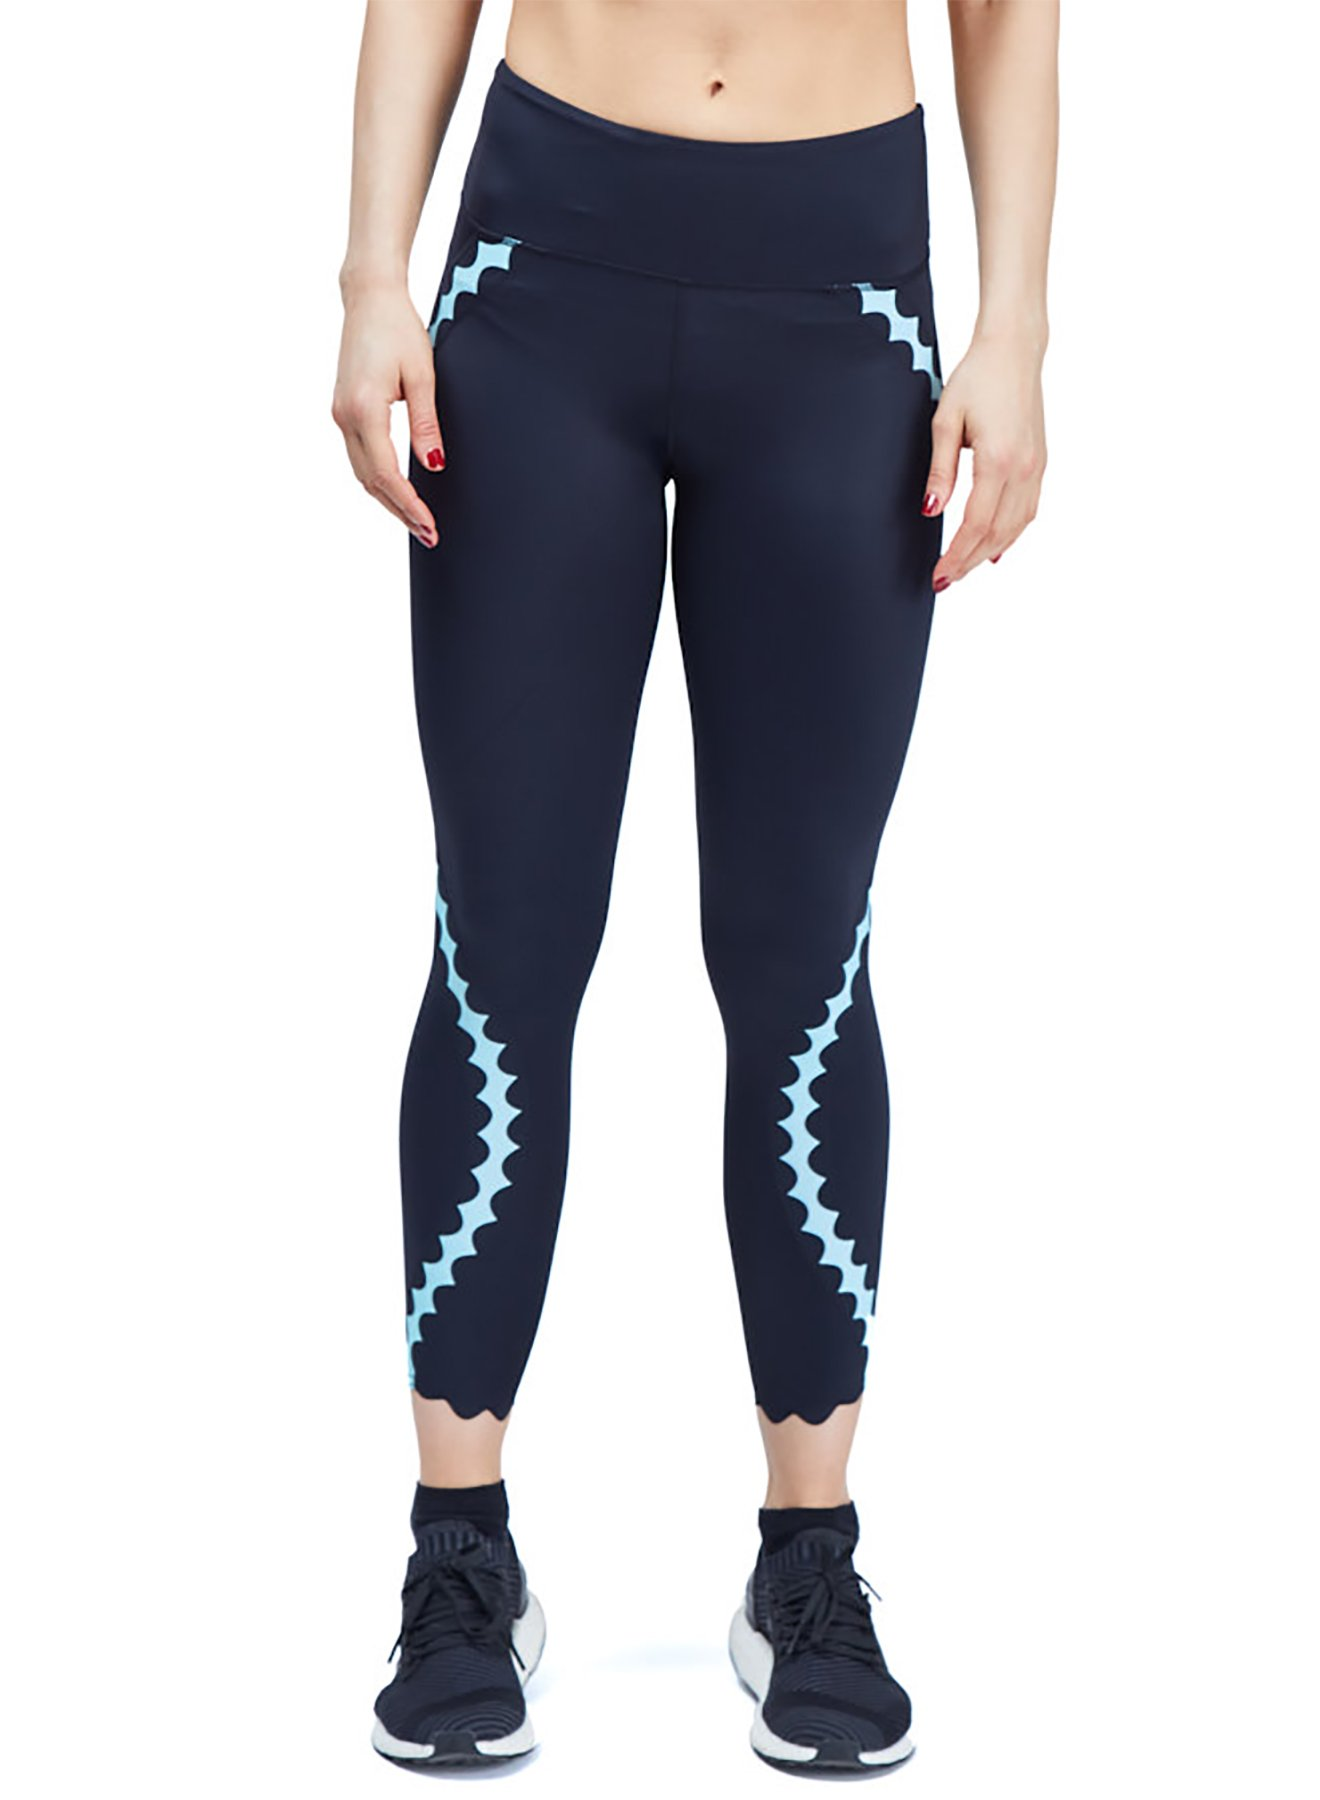 Scallop Legging by Urban Savage - 1